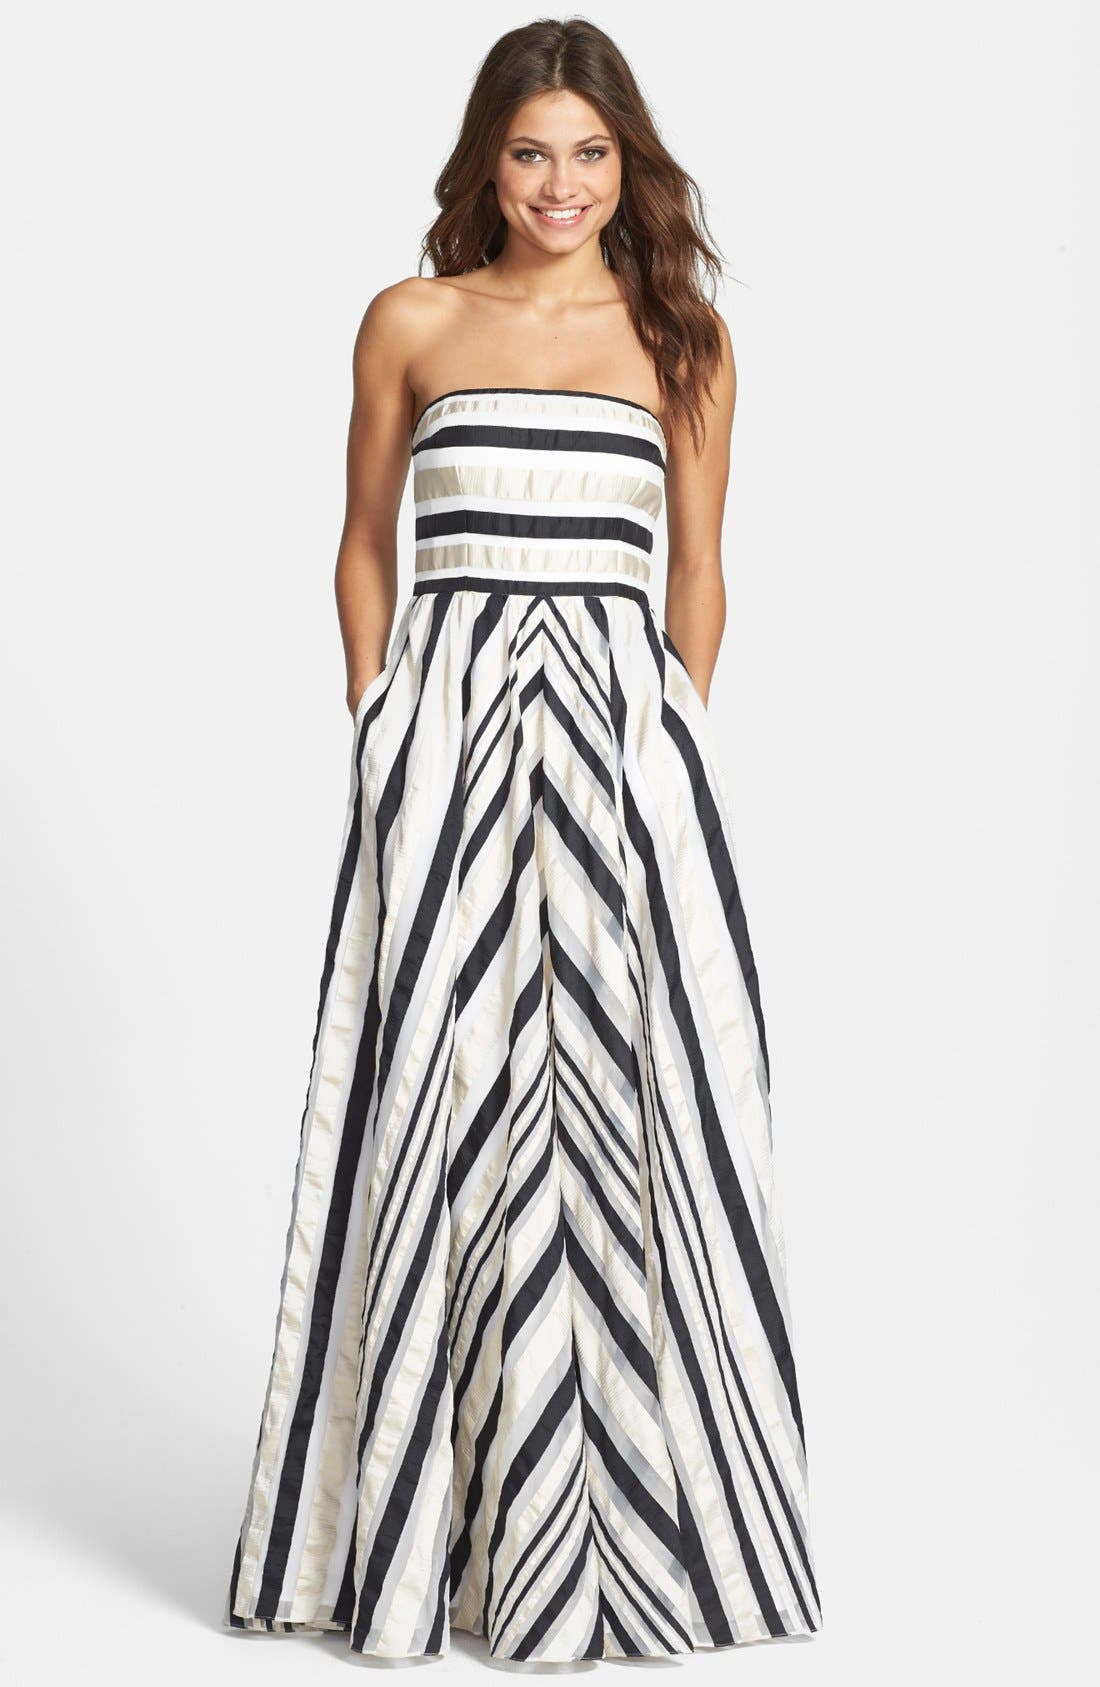 ADRIANNA PAPELL, Ribbon Stripe Strapless Dress, Main thumbnail 1, color, 001